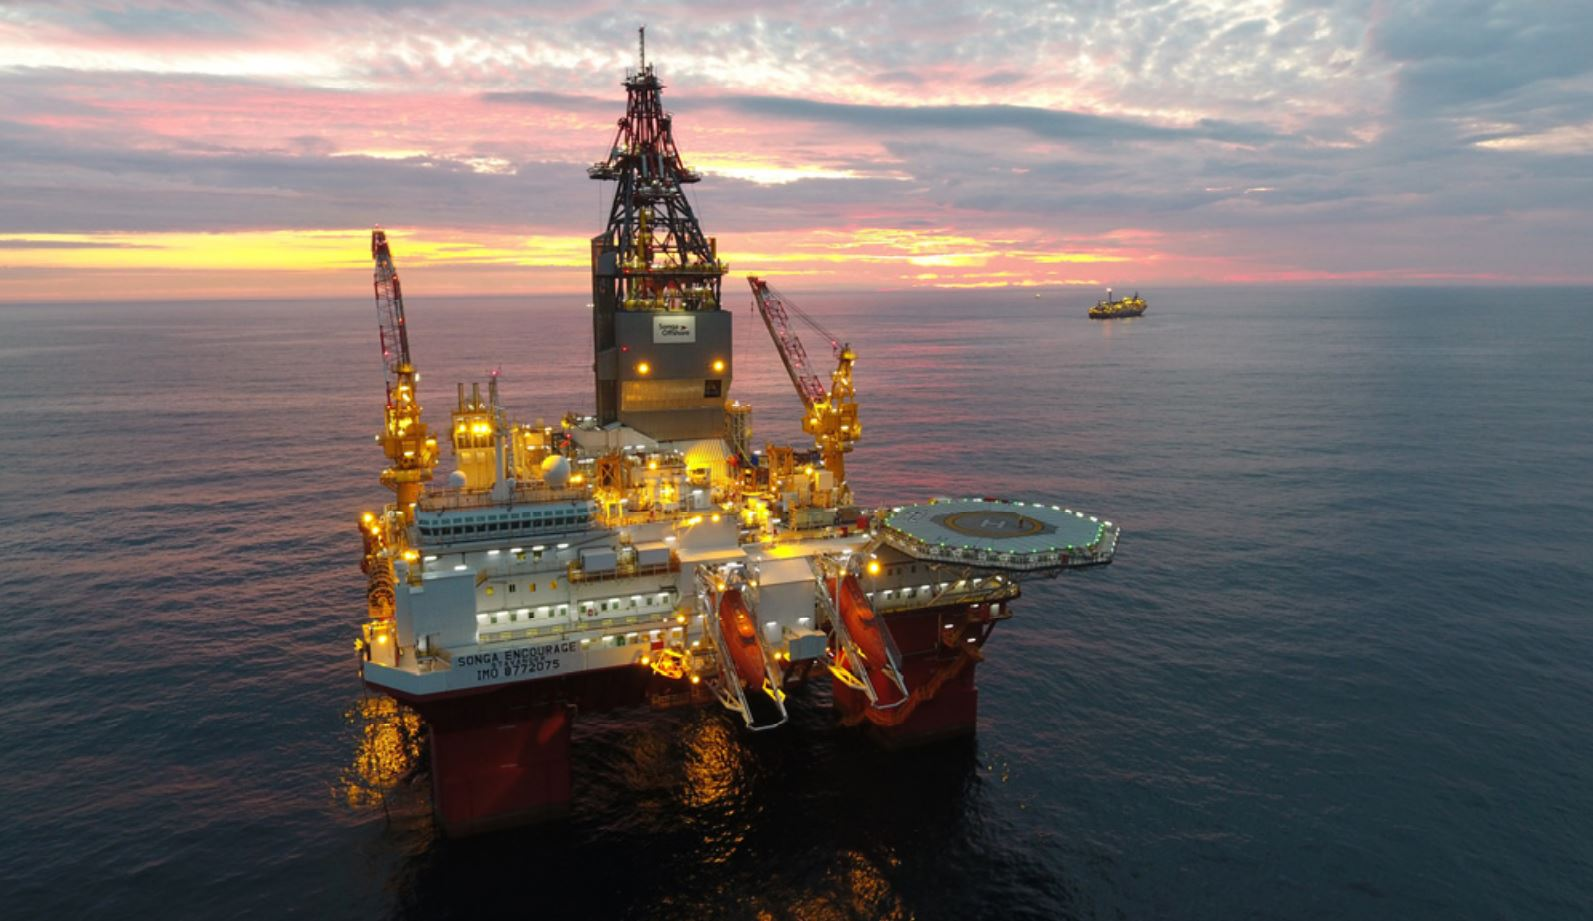 Transocean Encourage innretningen